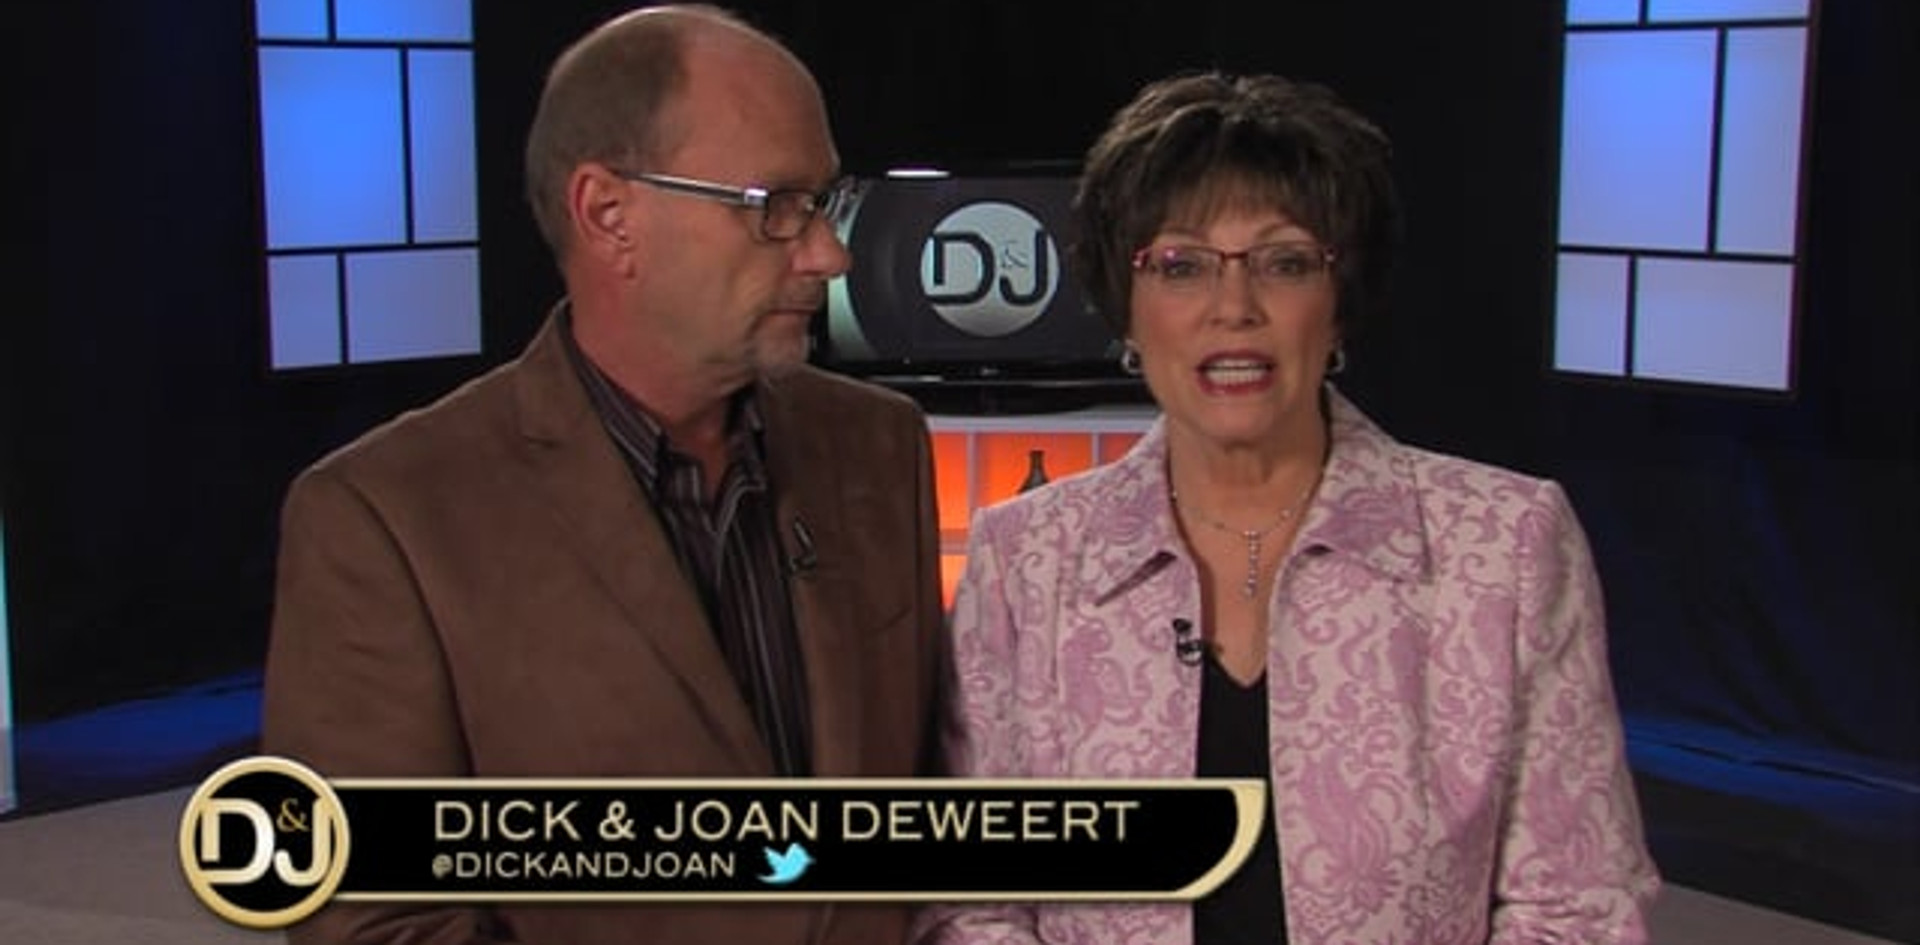 LIFELINE TODAY | Season 2, Episode 22 | Dick Deweert from Dominion Conference